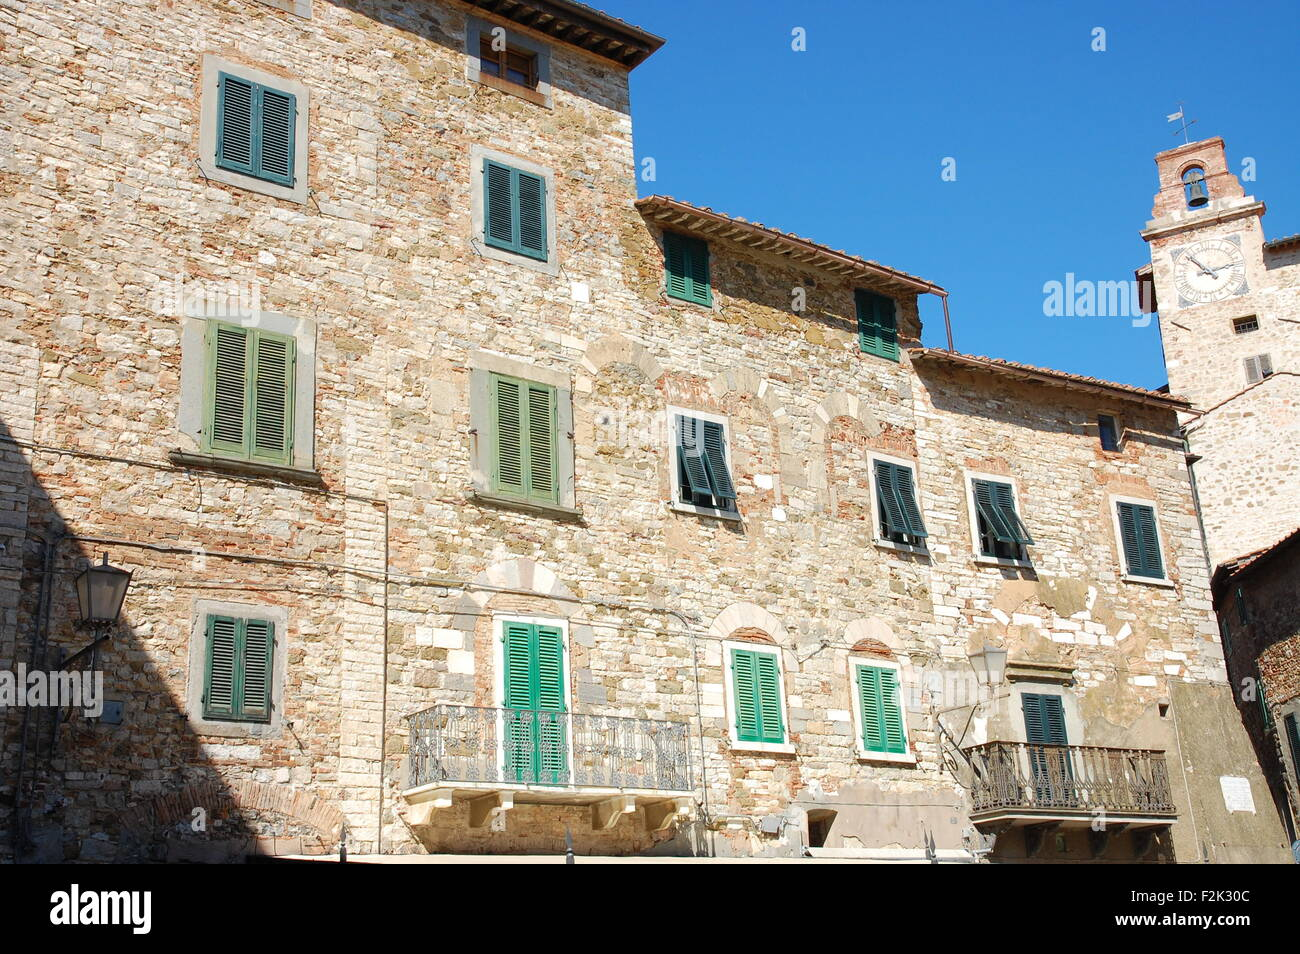 Stone houses at the Piazza del Mercato in the Tuscan hill-top town of Campiglia Marittima, Italy. - Stock Image